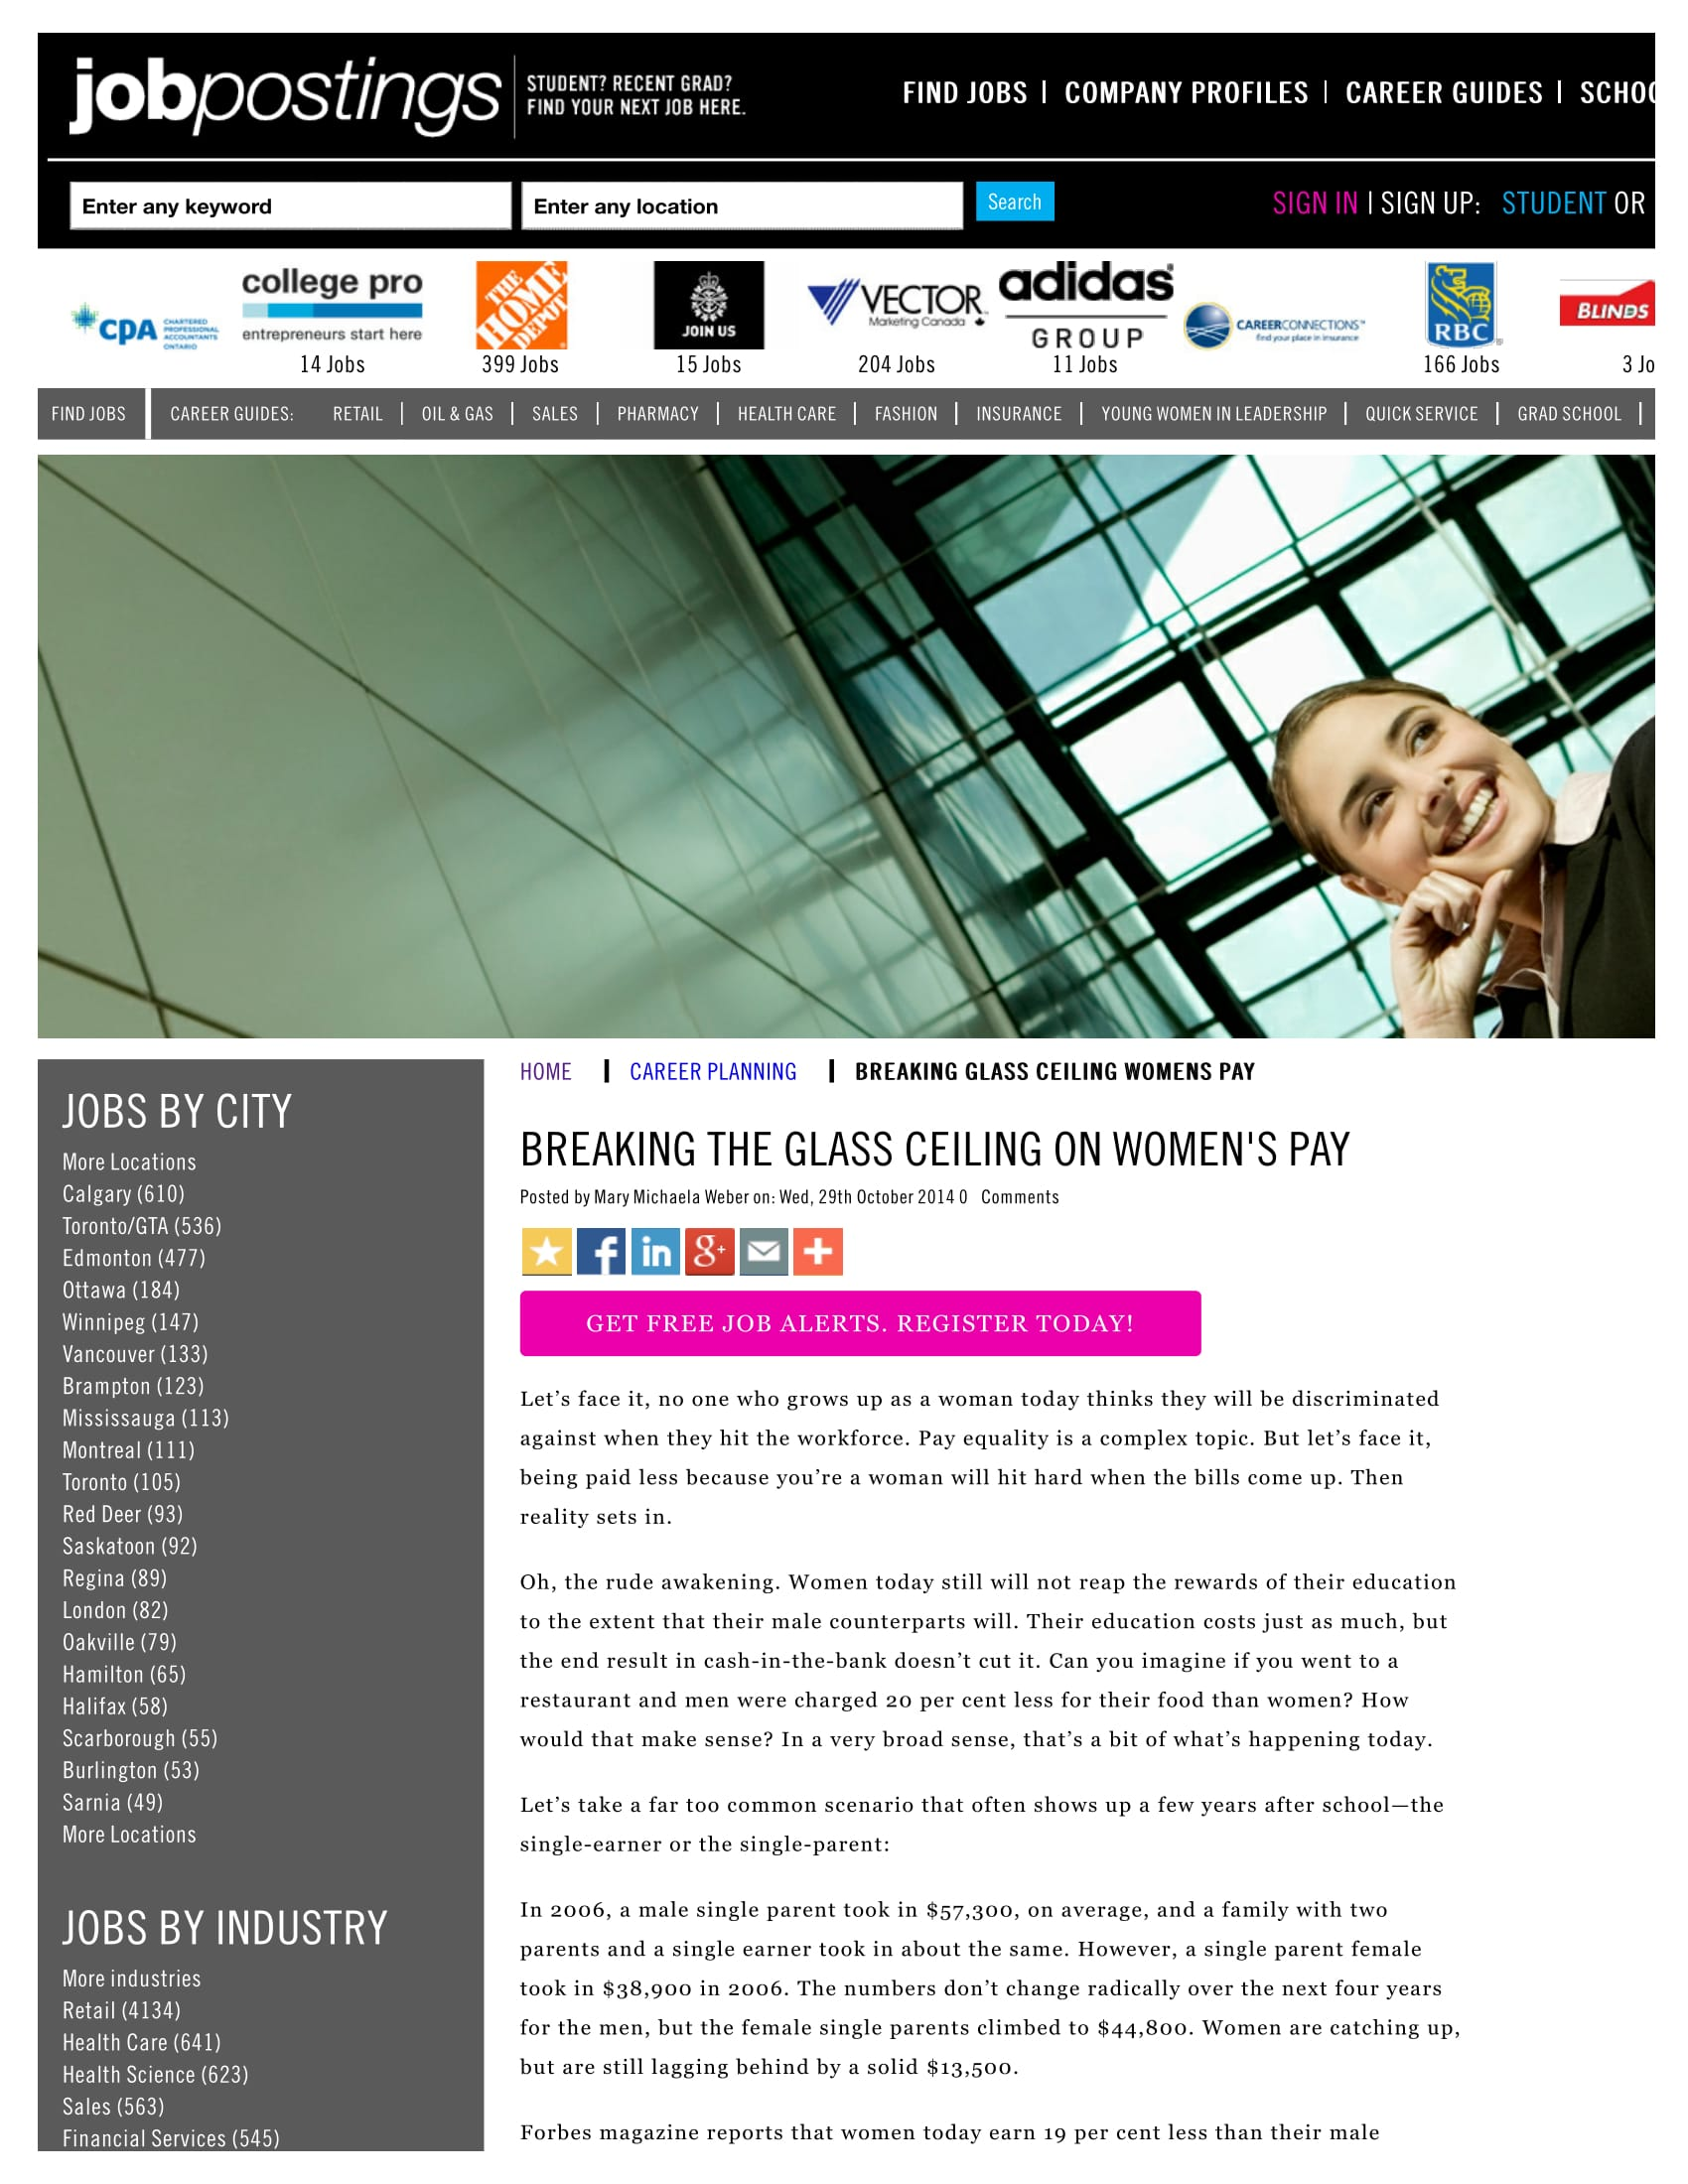 'The price of Nice' Breaking theGlass Ceiling on Women's Pay - page 17, November 2012